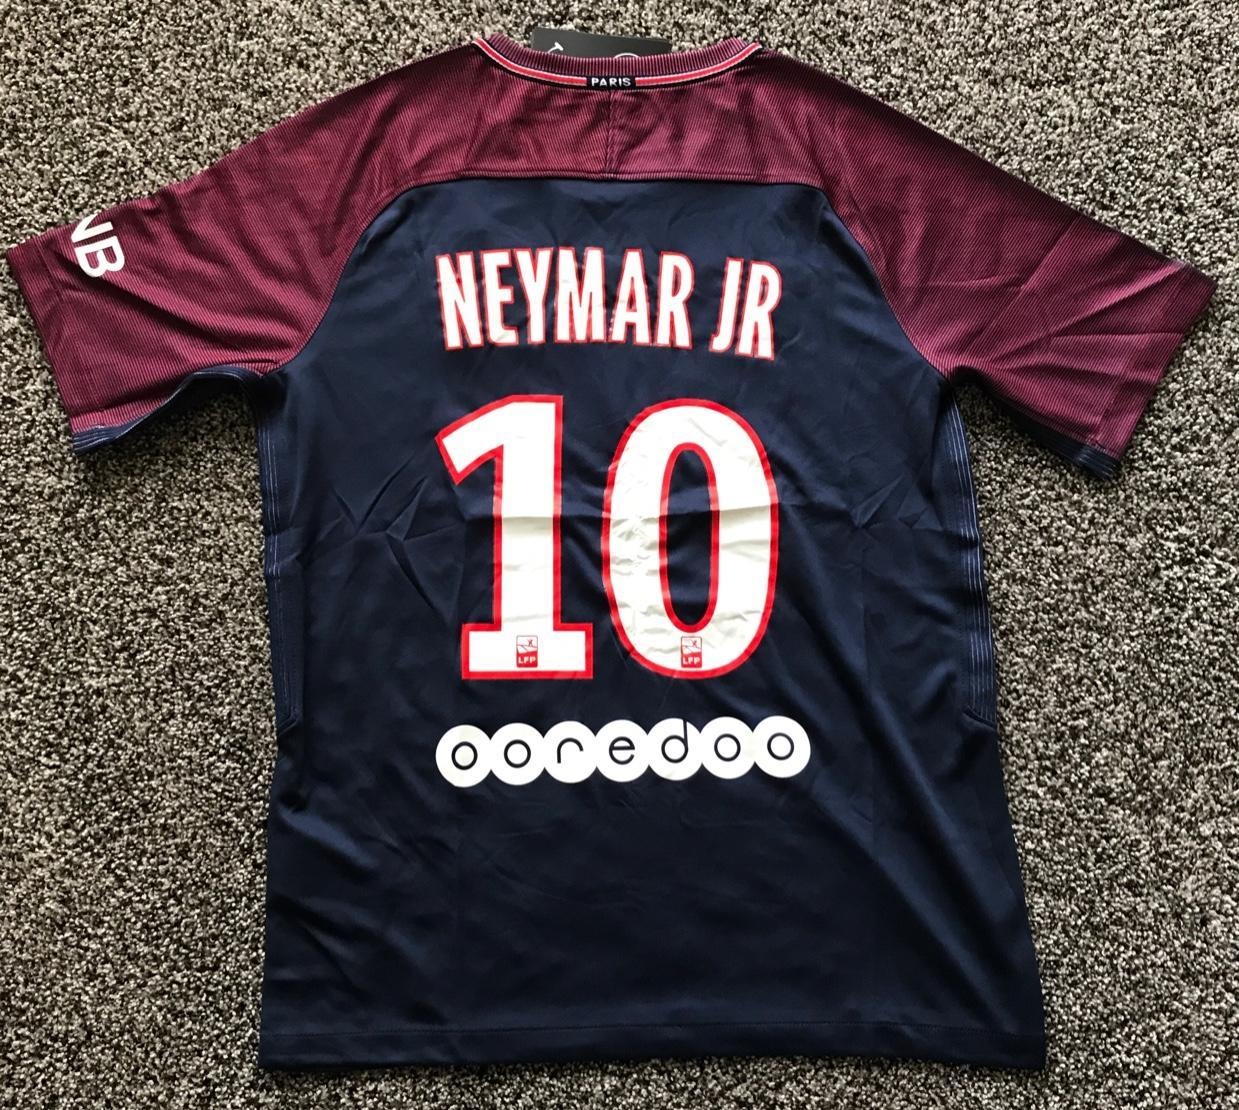 Psg black and pink jersey - Psg Neymar Home Soccer Jersey M